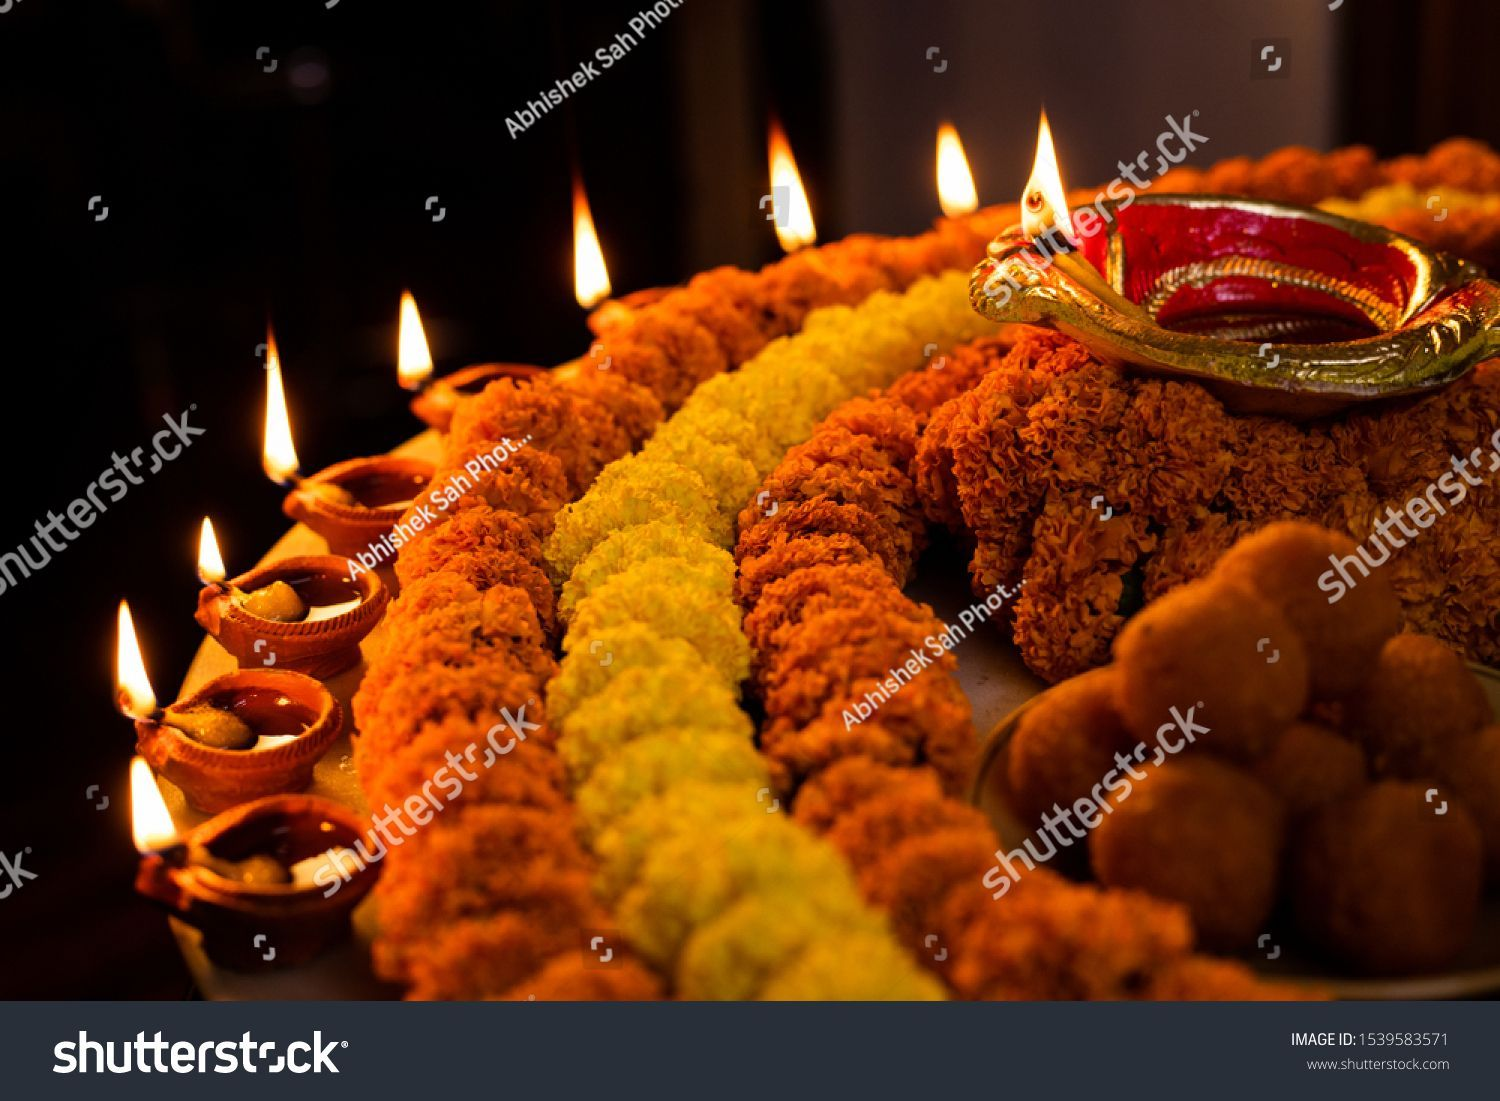 Happy Diwali Clay Diya Lamps Lit Stock Photo Edit Now 1539583571 In 2020